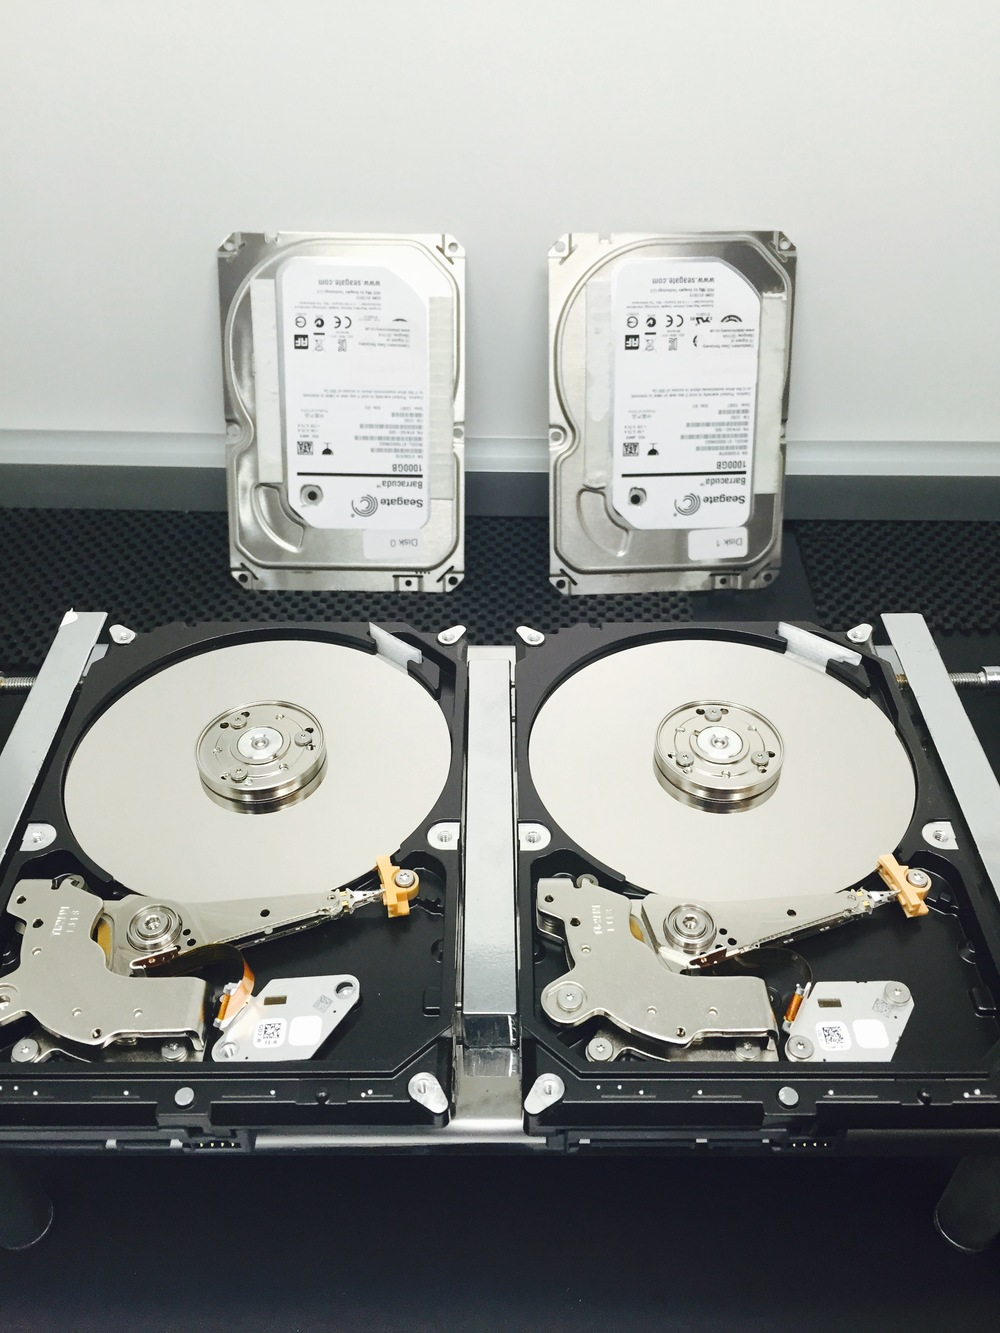 Seagate St1000dm003 drives opened up in the cleanroom awaiting head swap